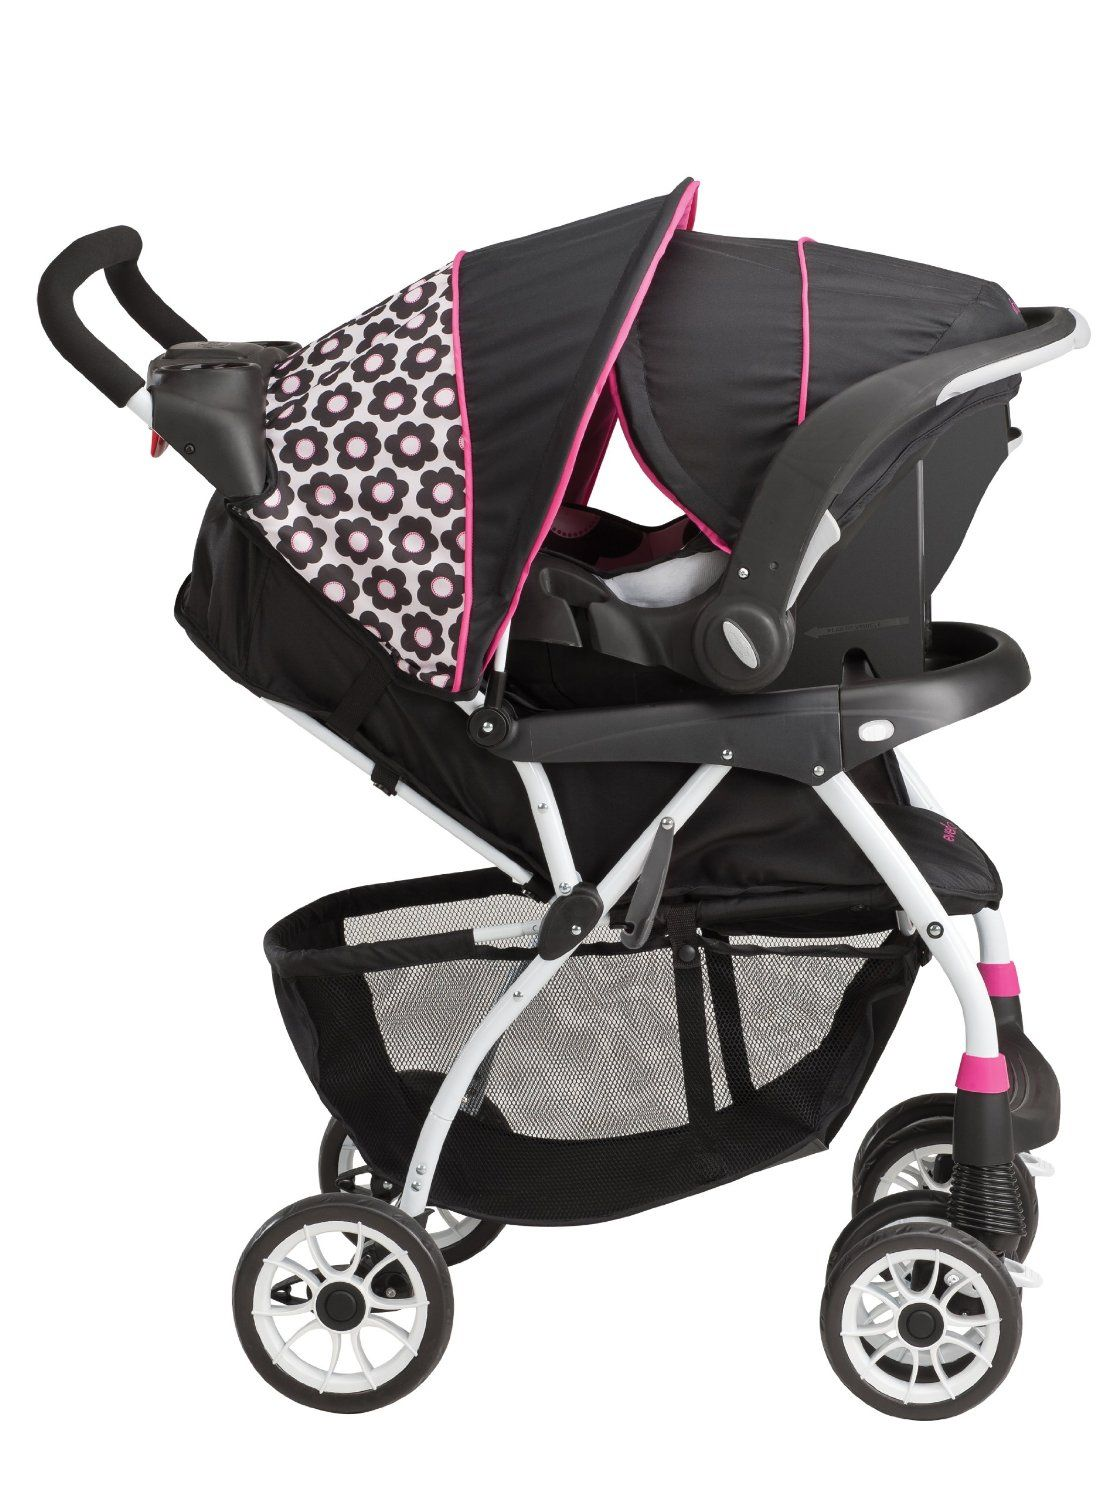 Best Baby Stroller Reviews UK Car seat and stroller